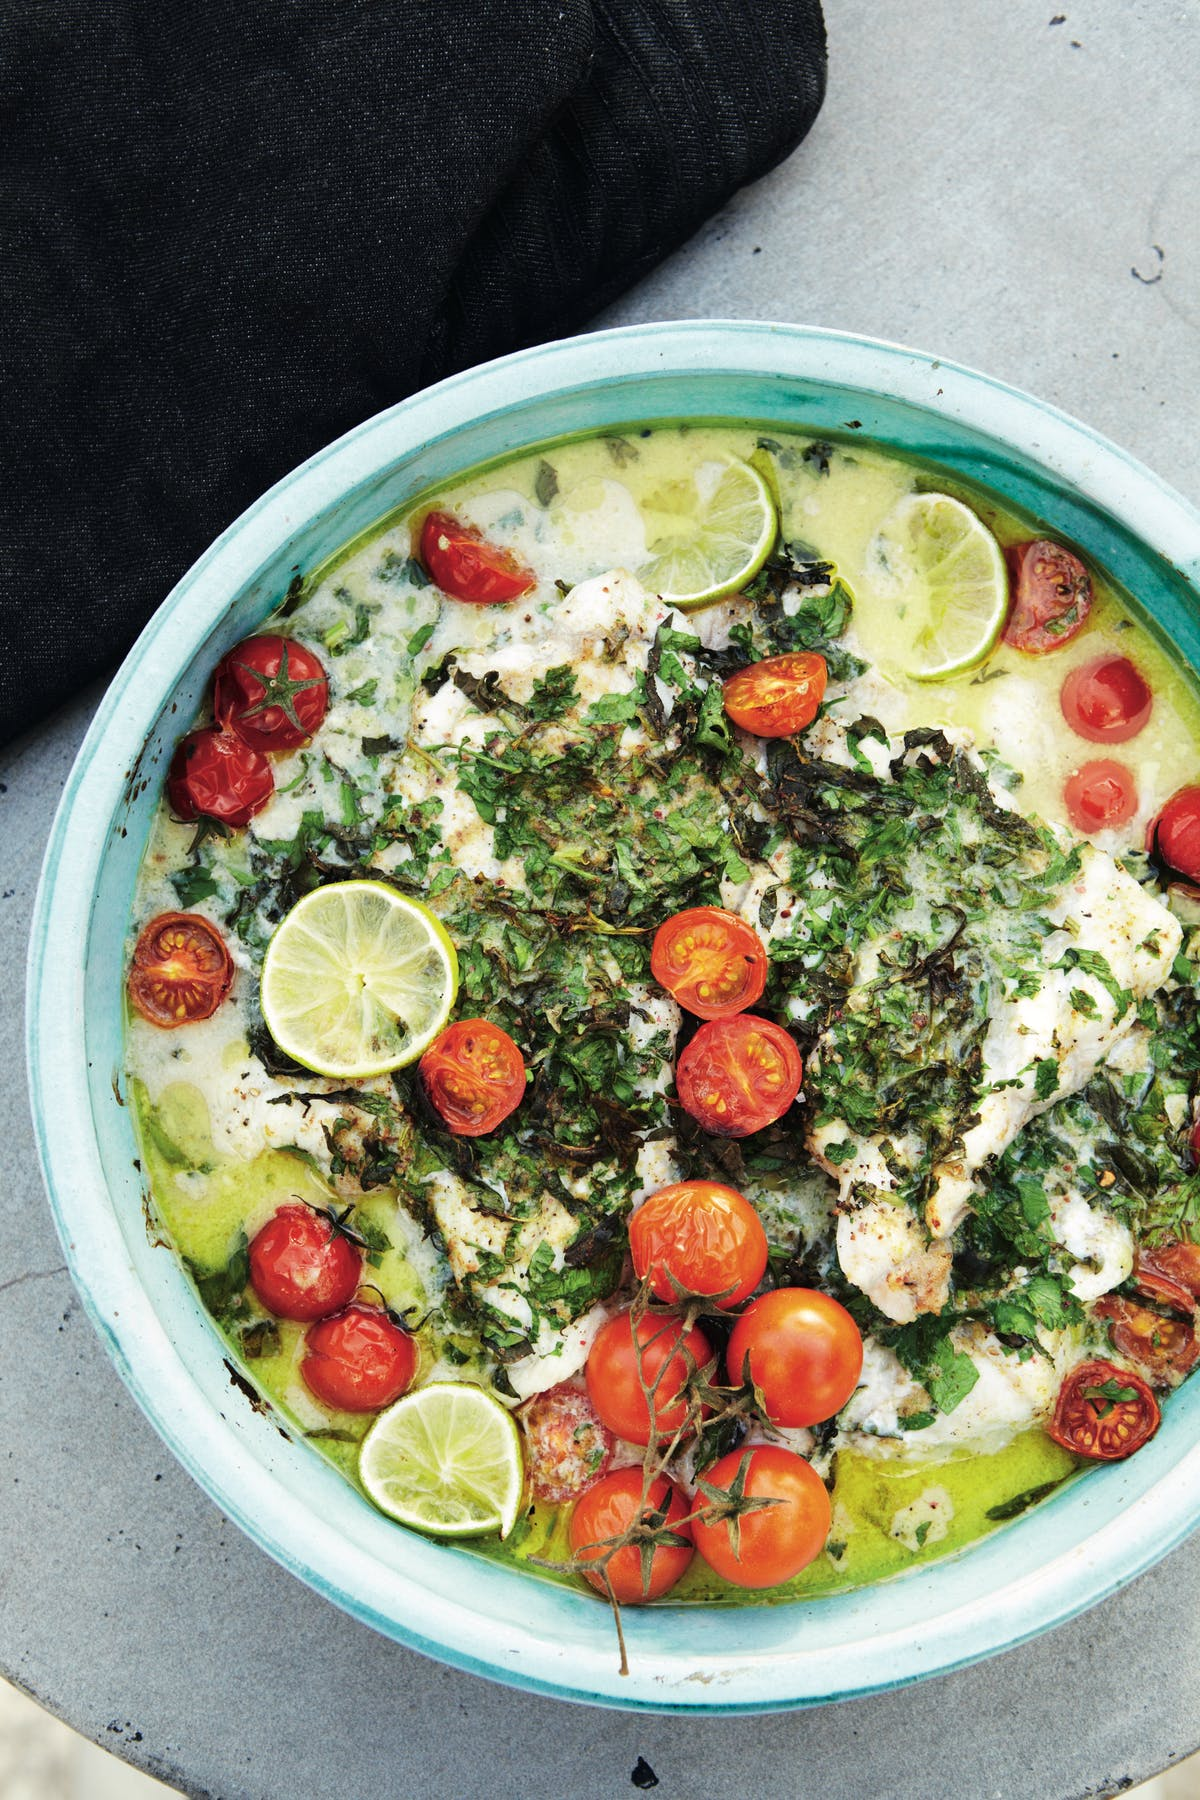 White fish with herbs, coconut milk, lime, and tomatoes